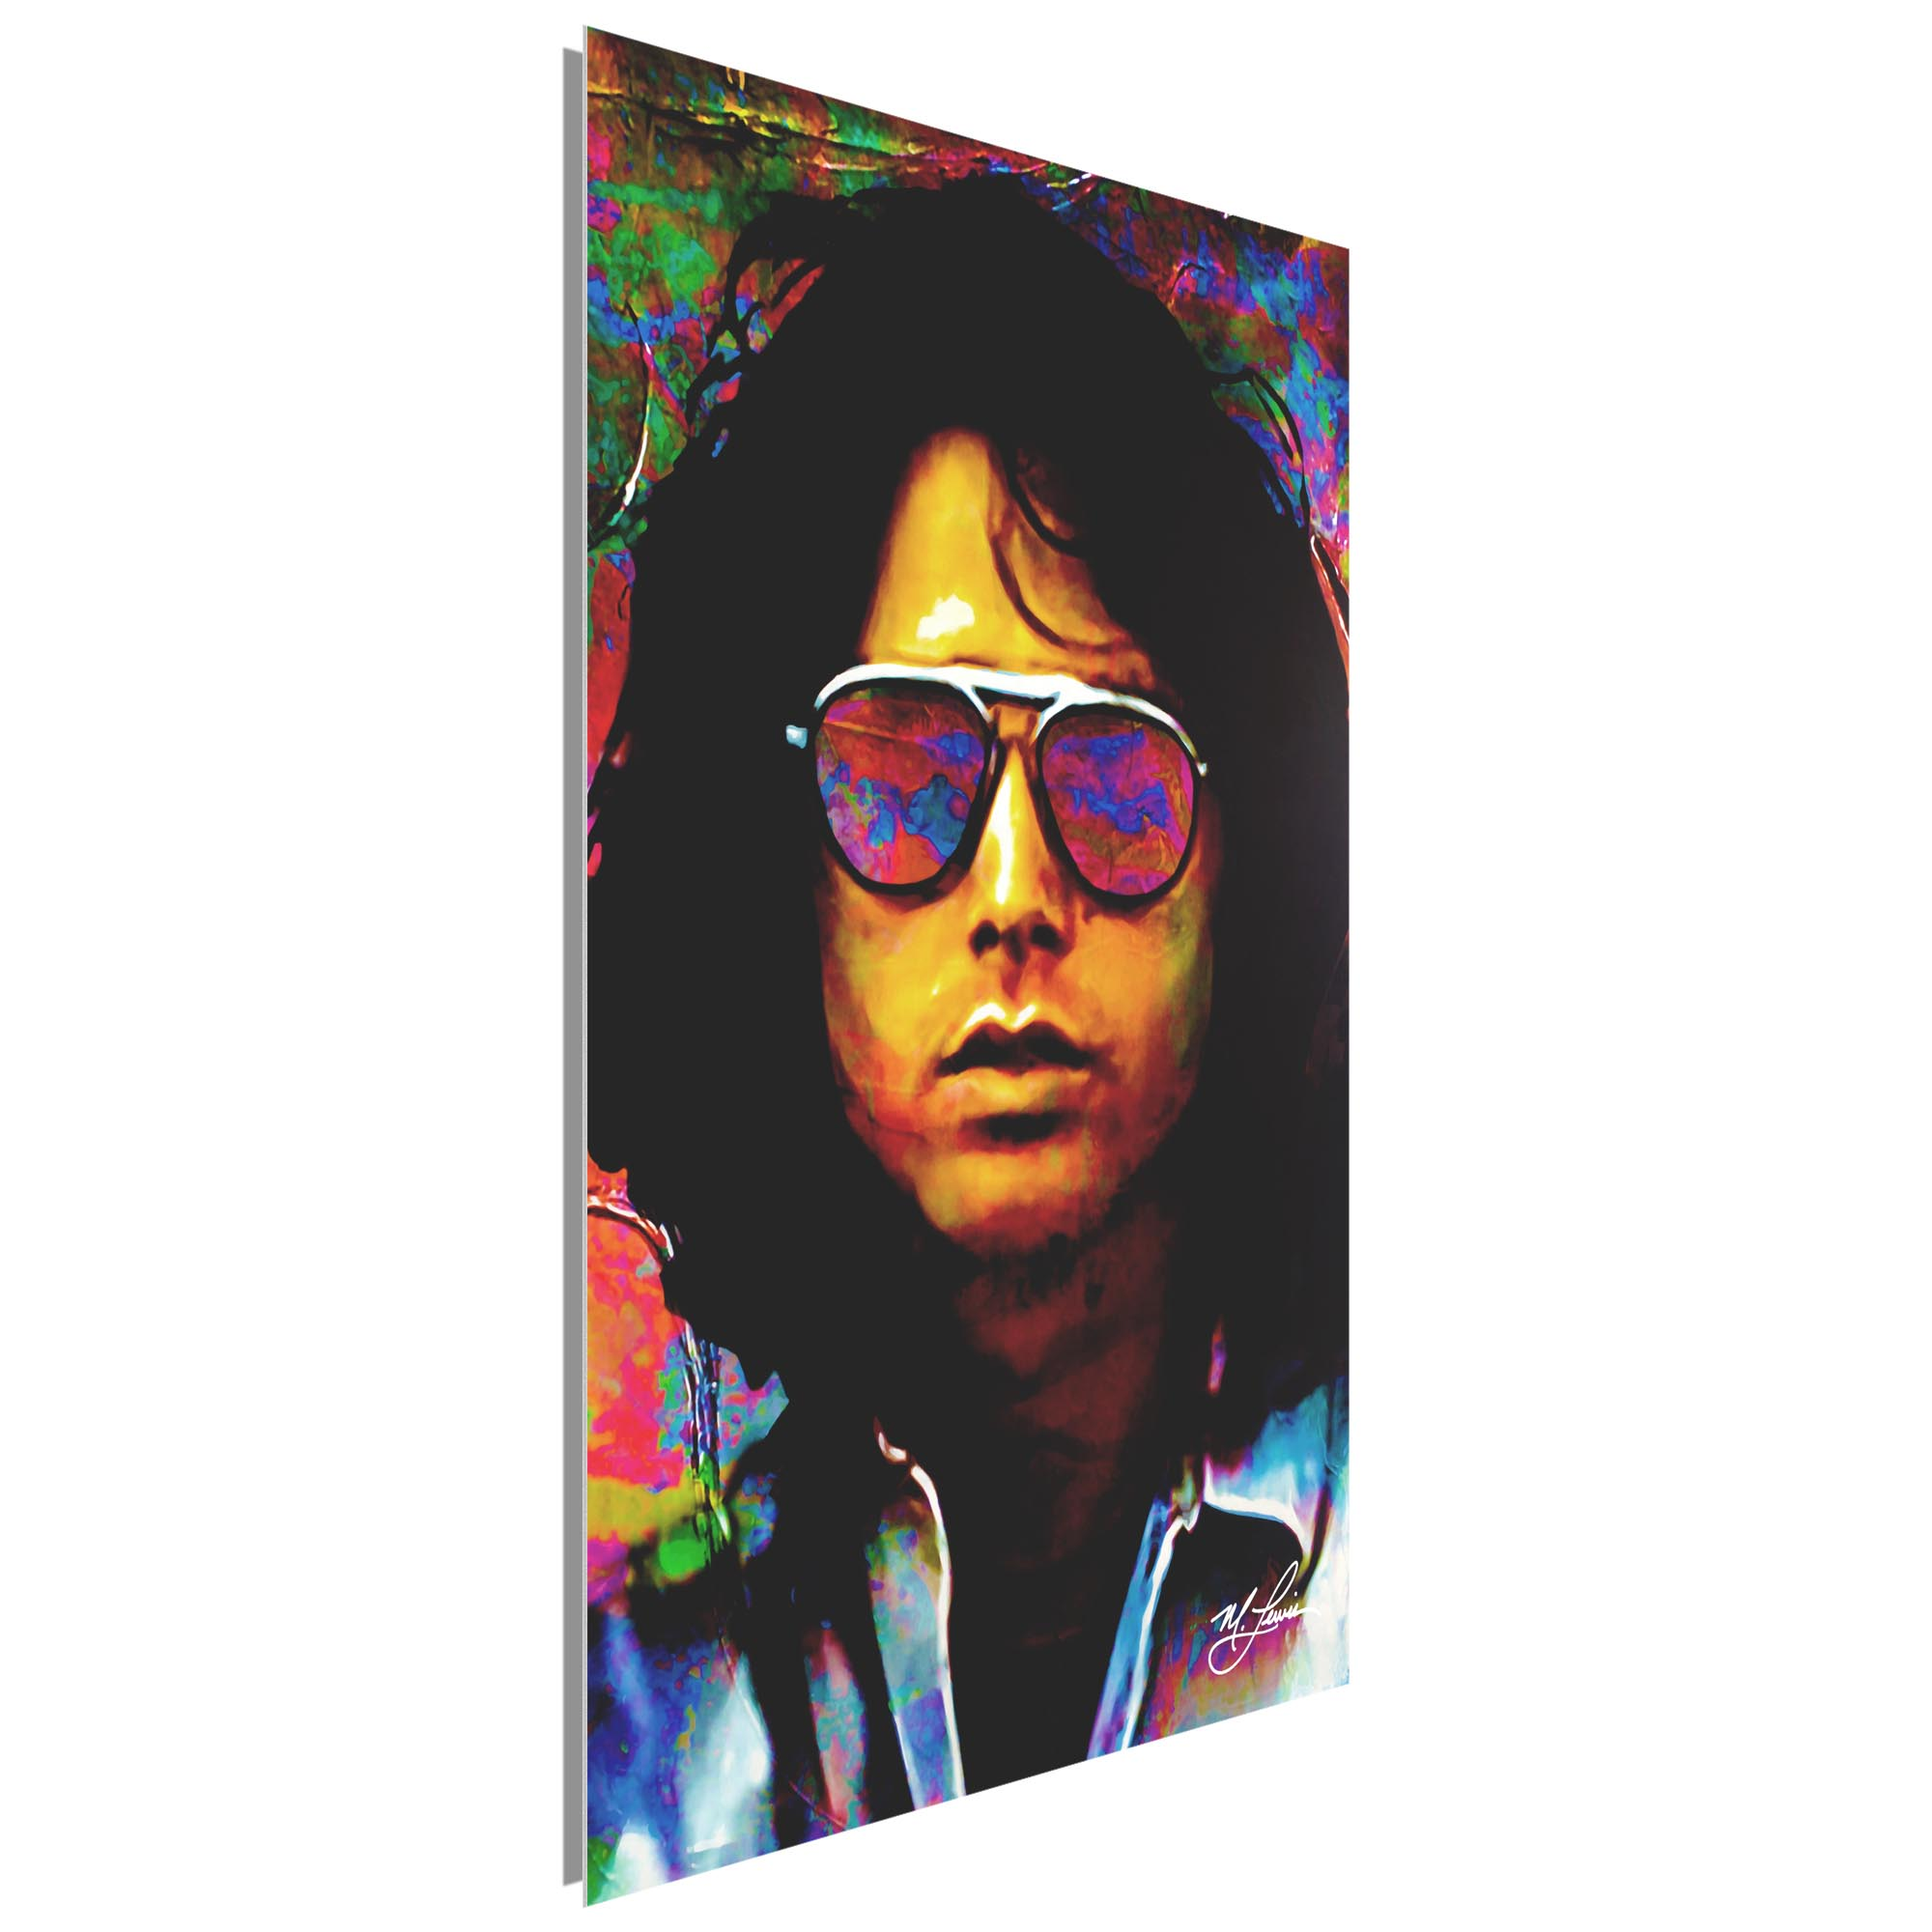 Jim Morrison Insightful Chaos 22x32 Metal or Plexiglass Pop Art Portrait - Image 2